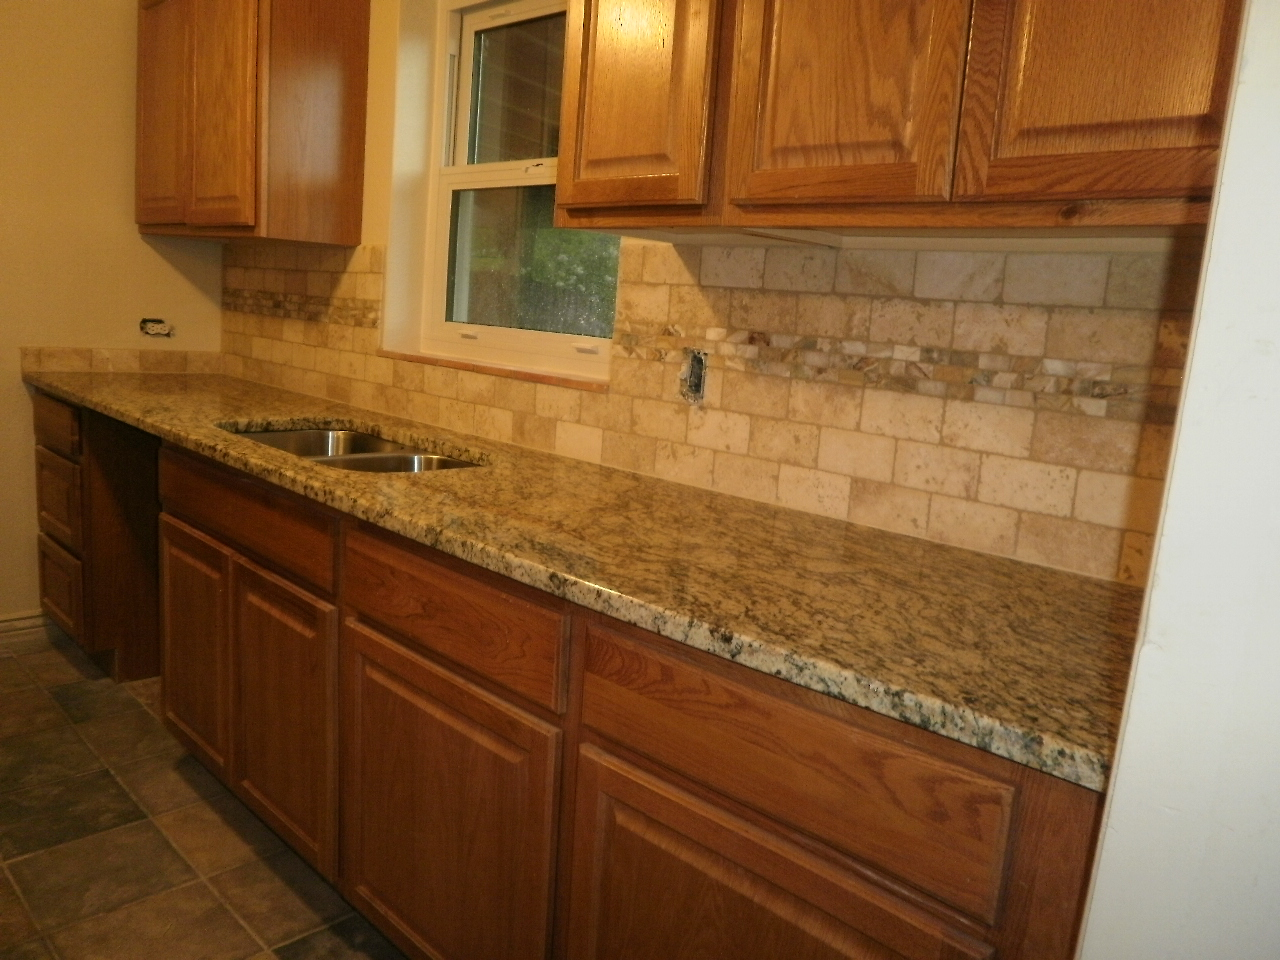 Santa cecilia granite backsplash ideas Granite kitchen design ideas